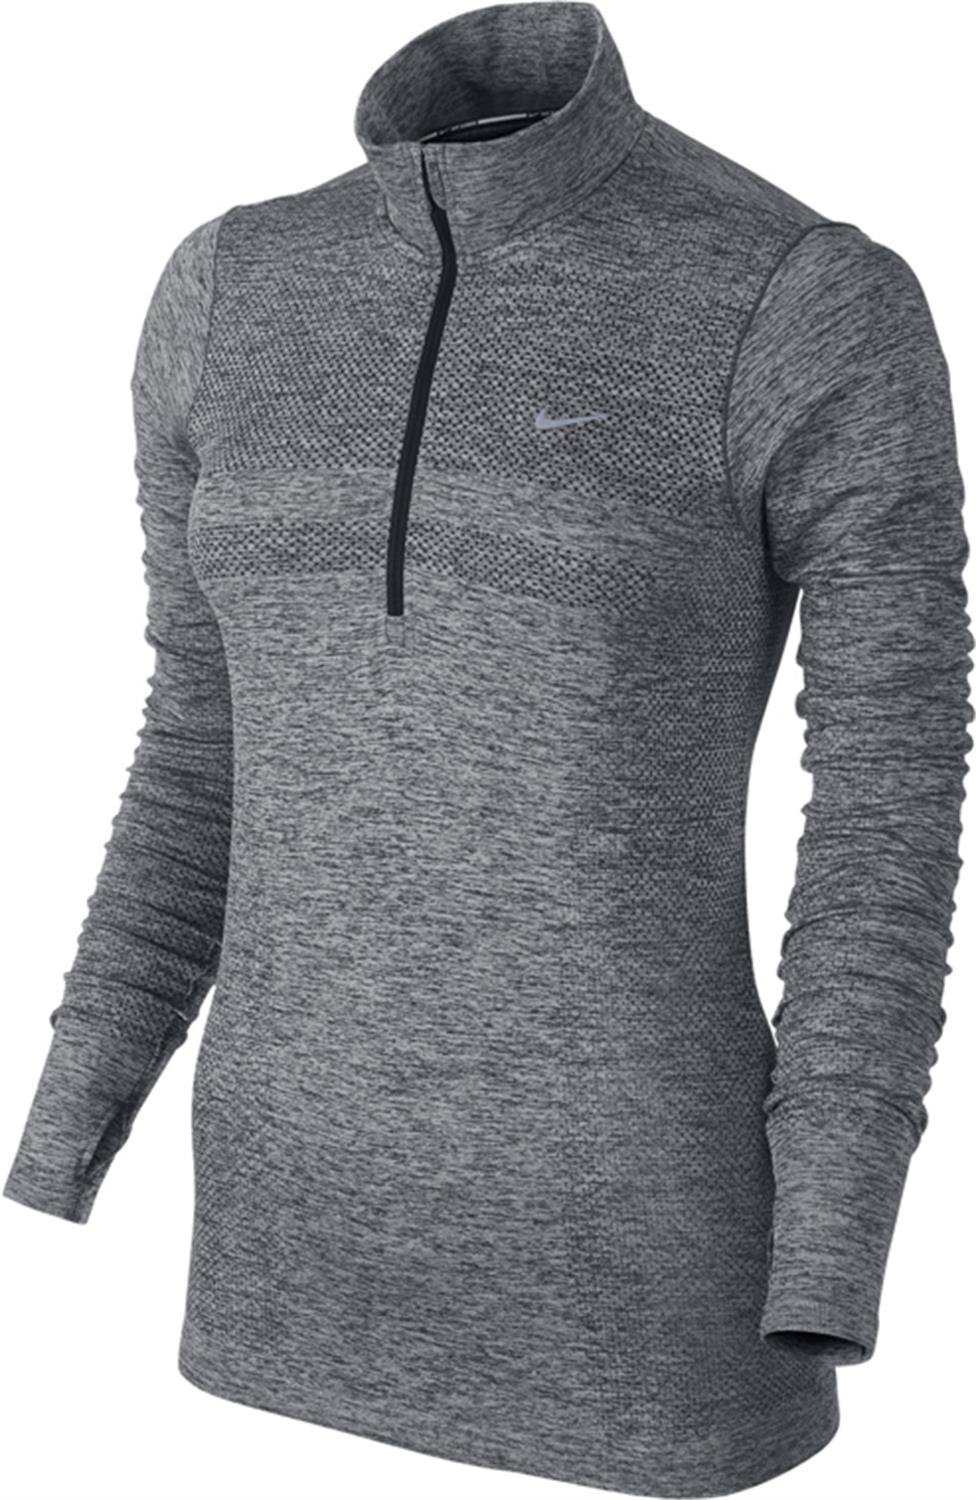 18868024 Nike Dri-Fit Knit Half Zip Womens Long Sleeve Running Top Size M, Exercise  & Fitness - Amazon Canada